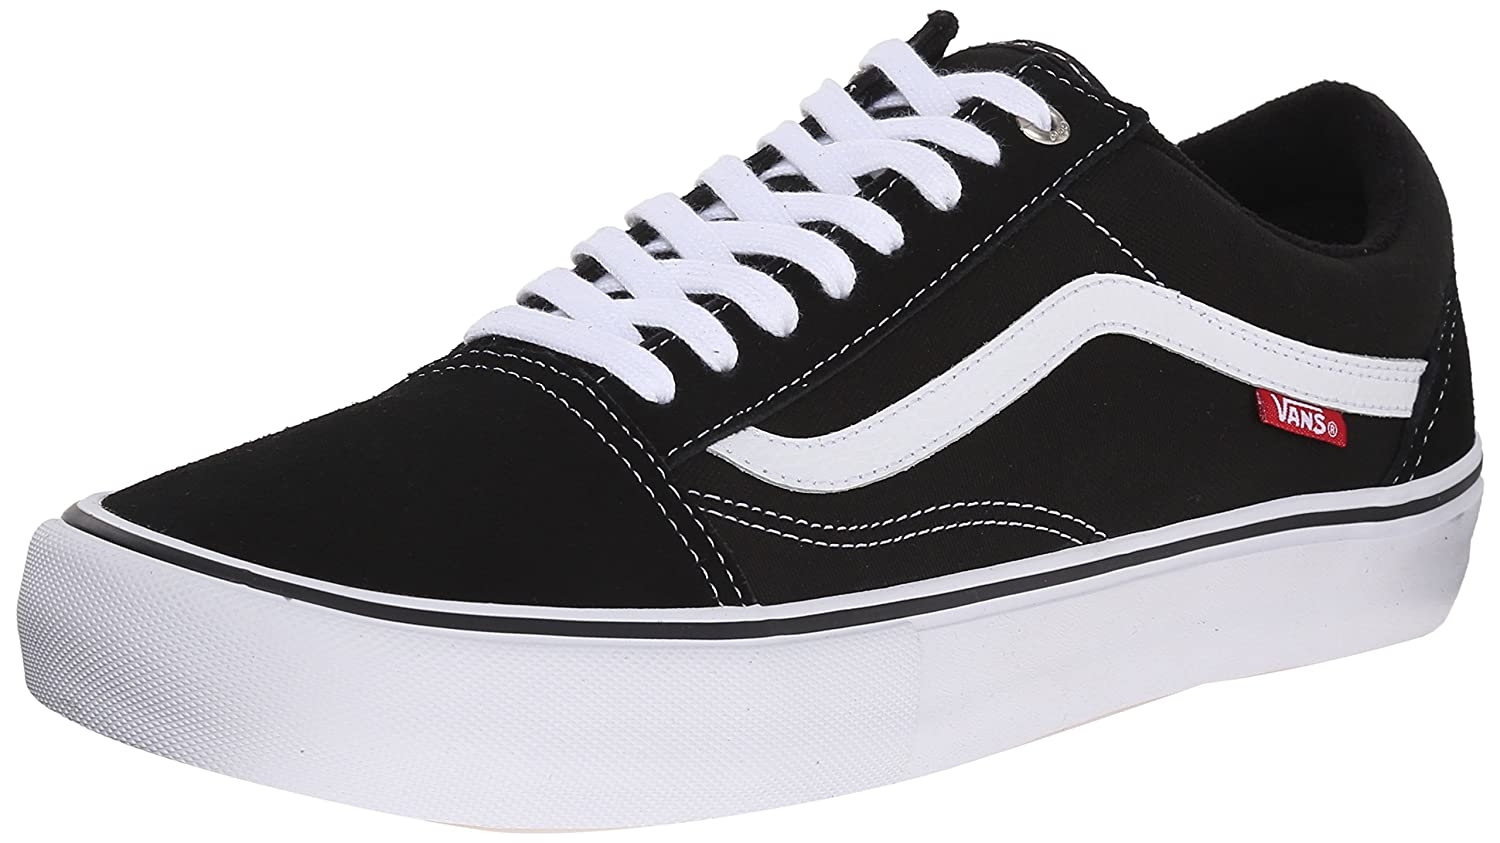 fc049eee704 Vans Old Skool Pro  Amazon.co.uk  Shoes   Bags